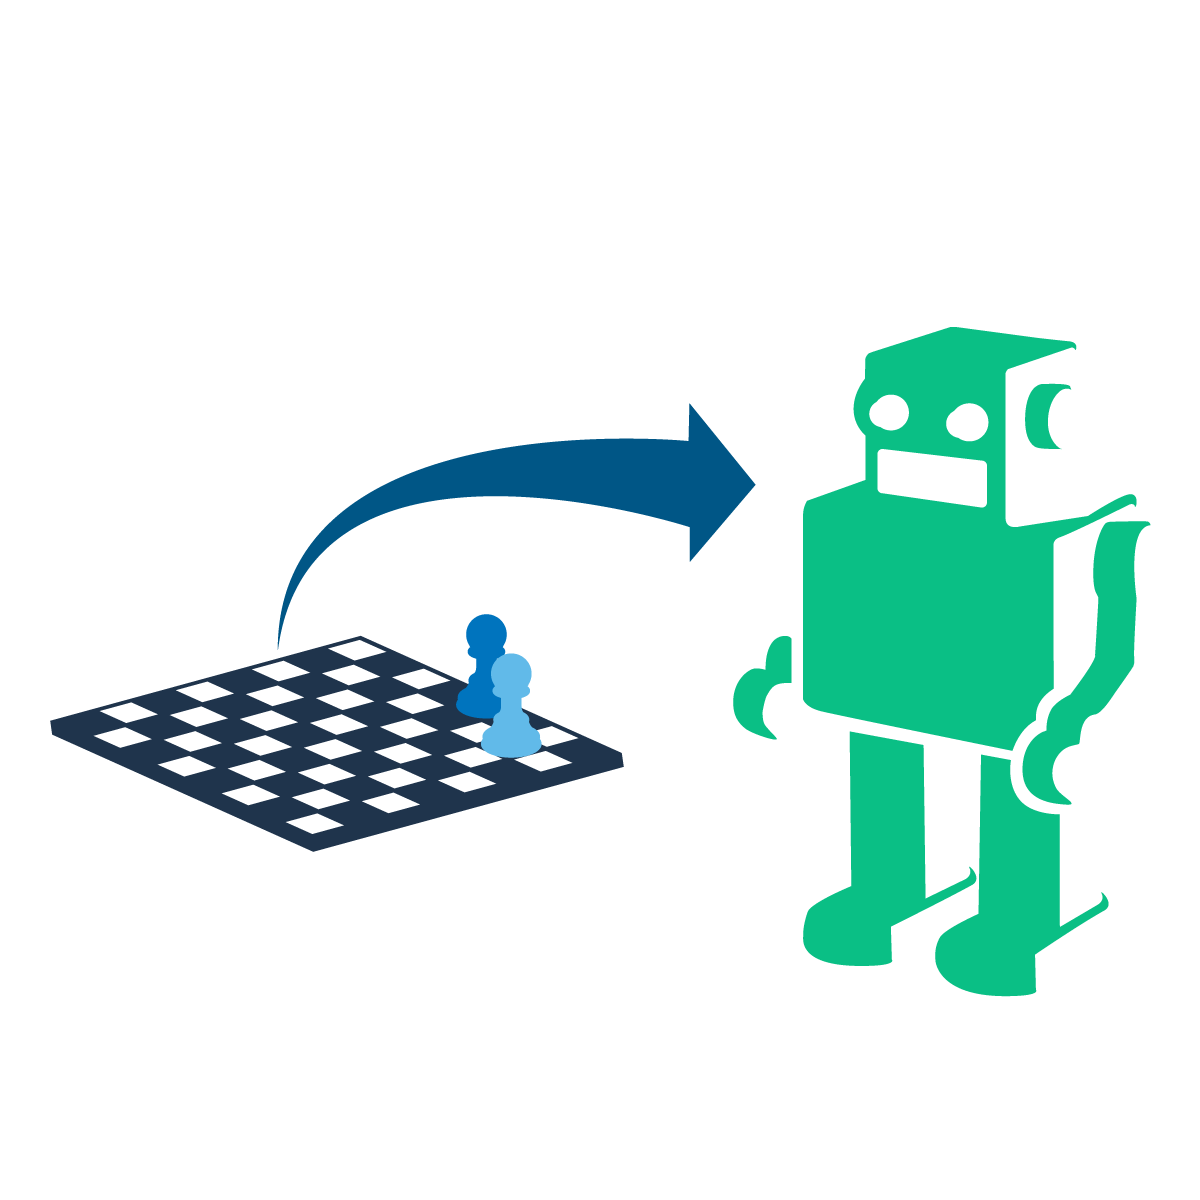 Chess board and robot graphic